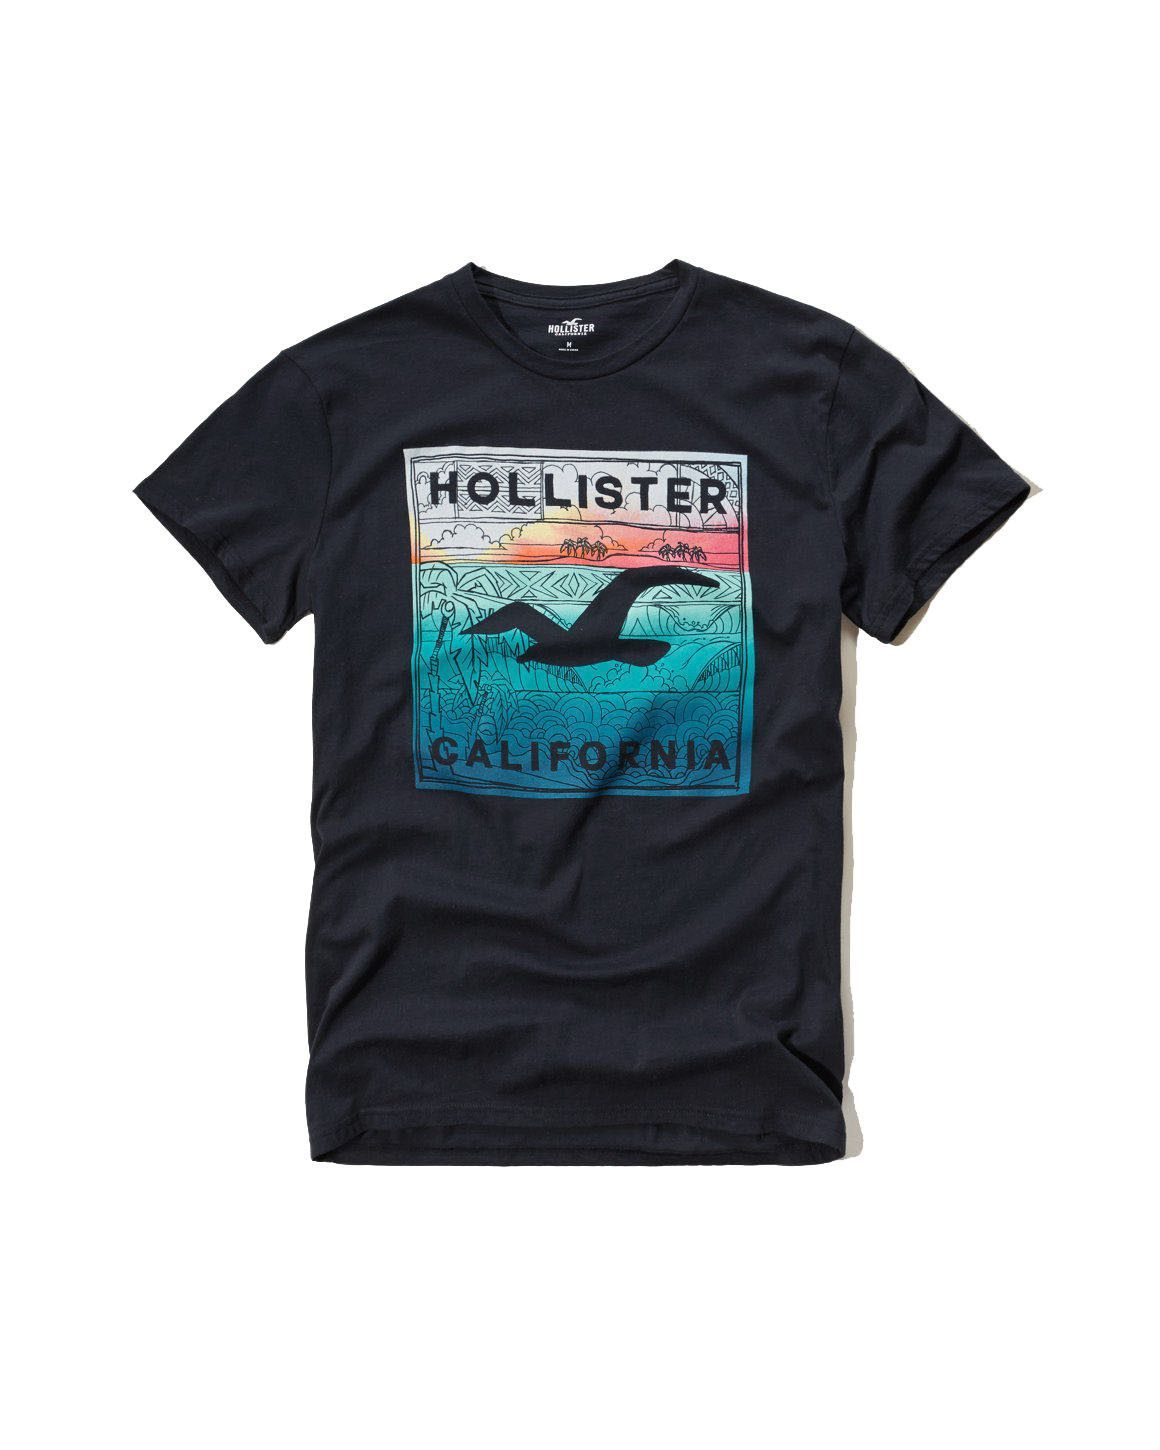 Hollister Mens T Shirt Black